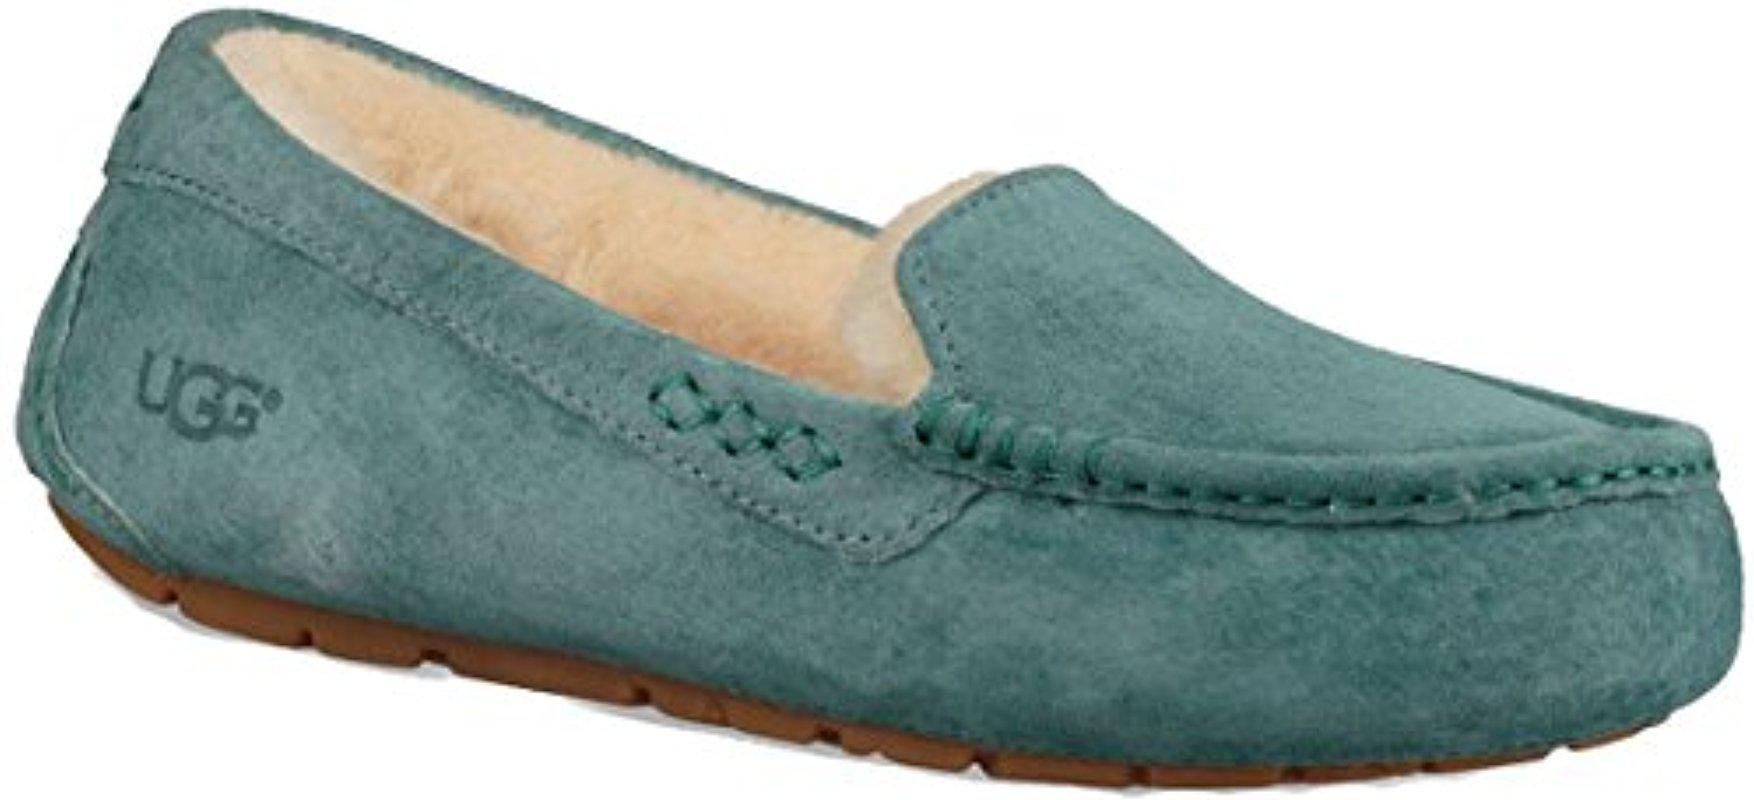 UGG. Women's Green Ansley Moccasin